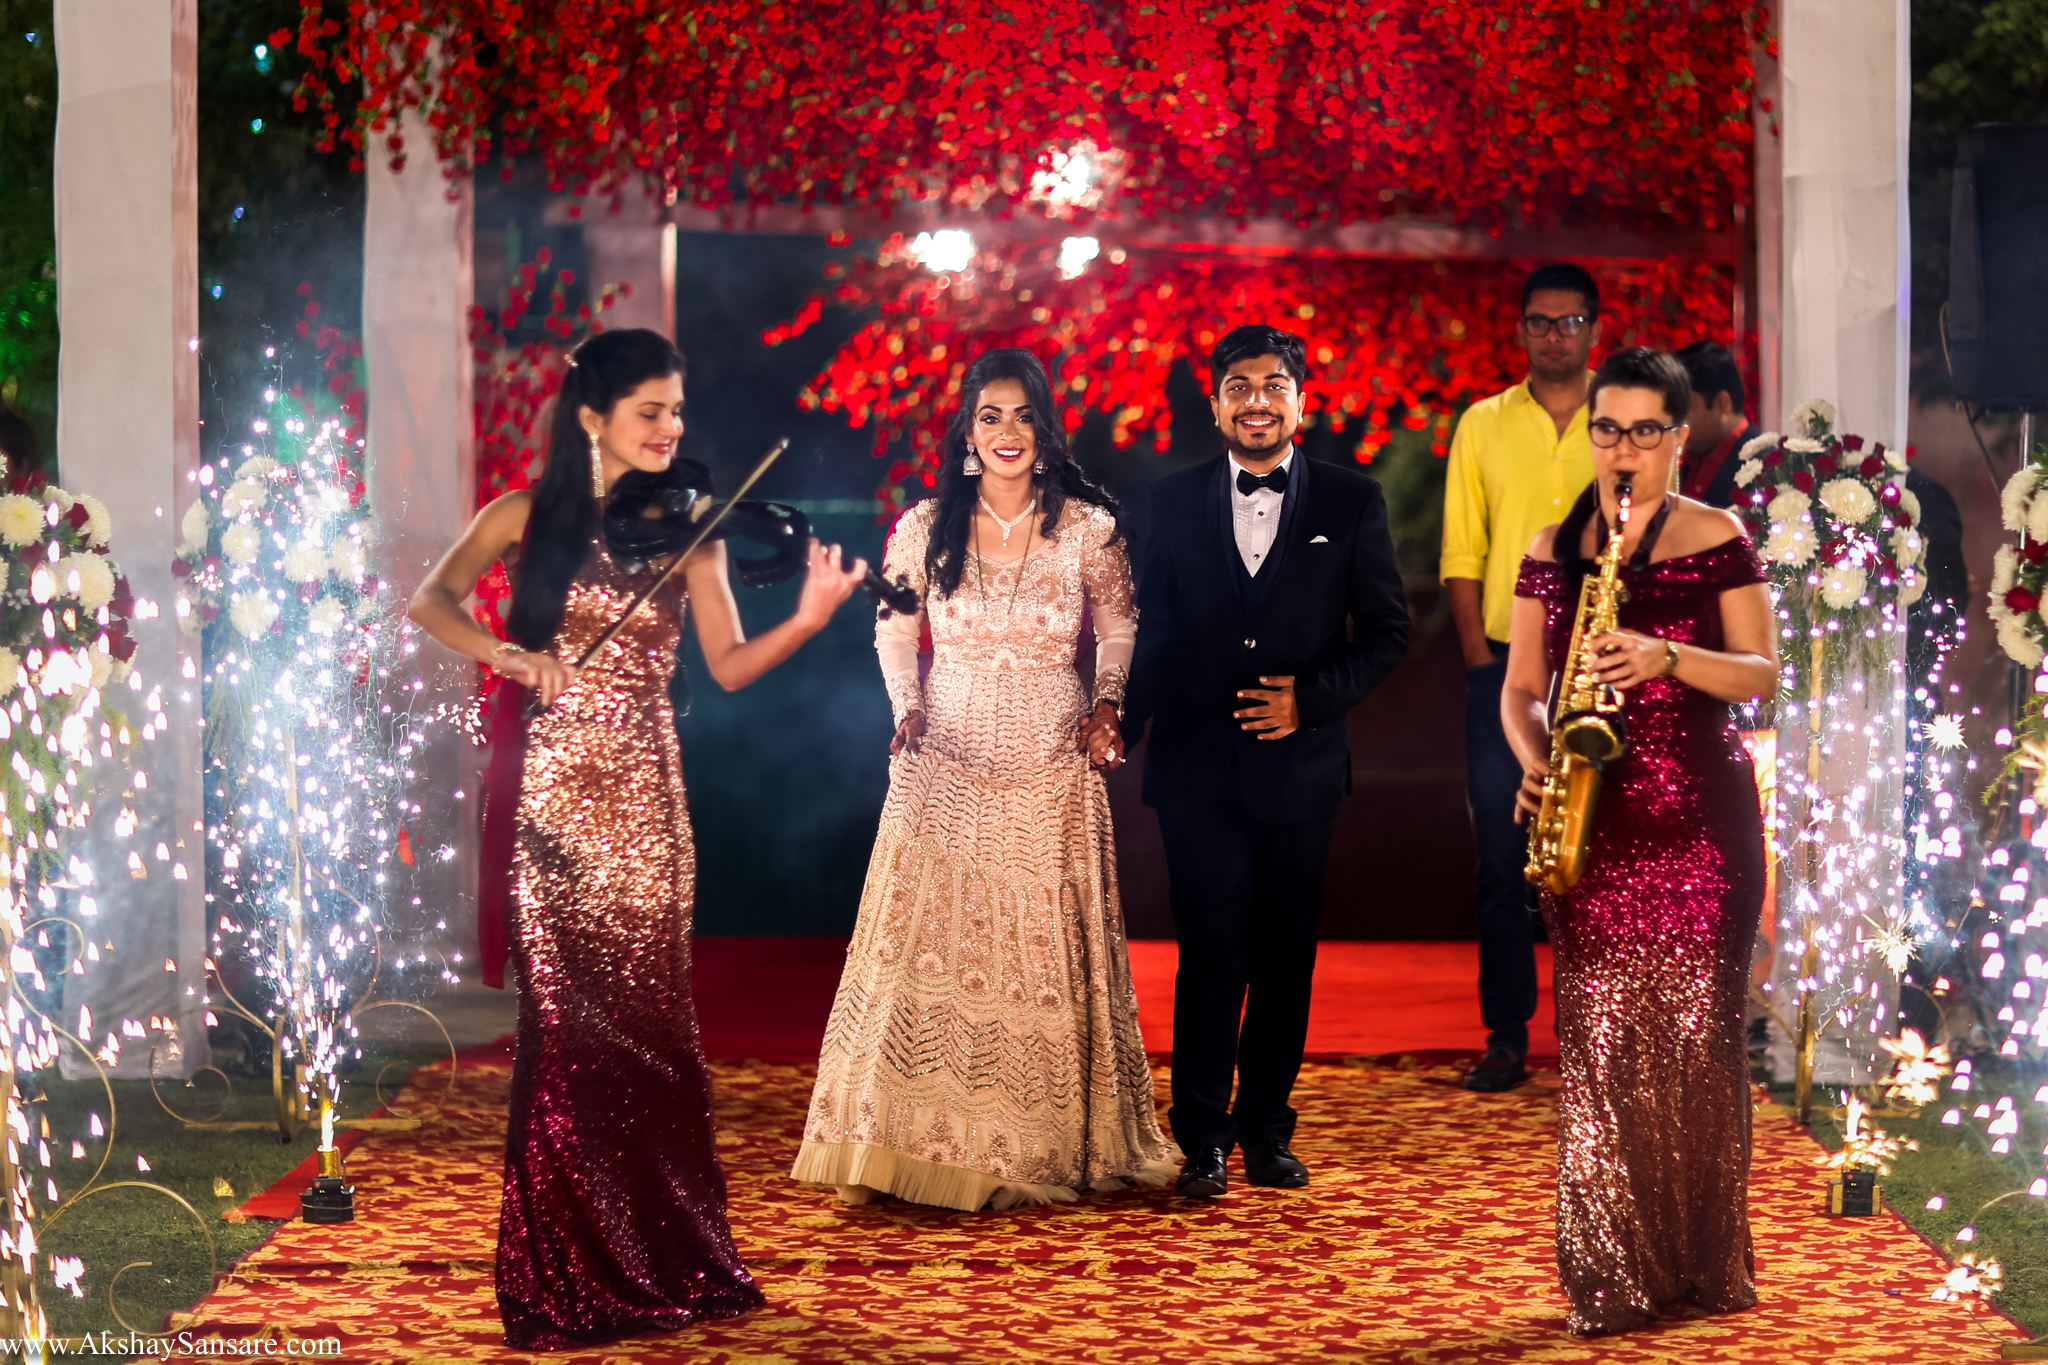 Nupur & Rohan wedding Akshay Sansare Photography best wedding photographer in mumbai India Candid(59).jpg